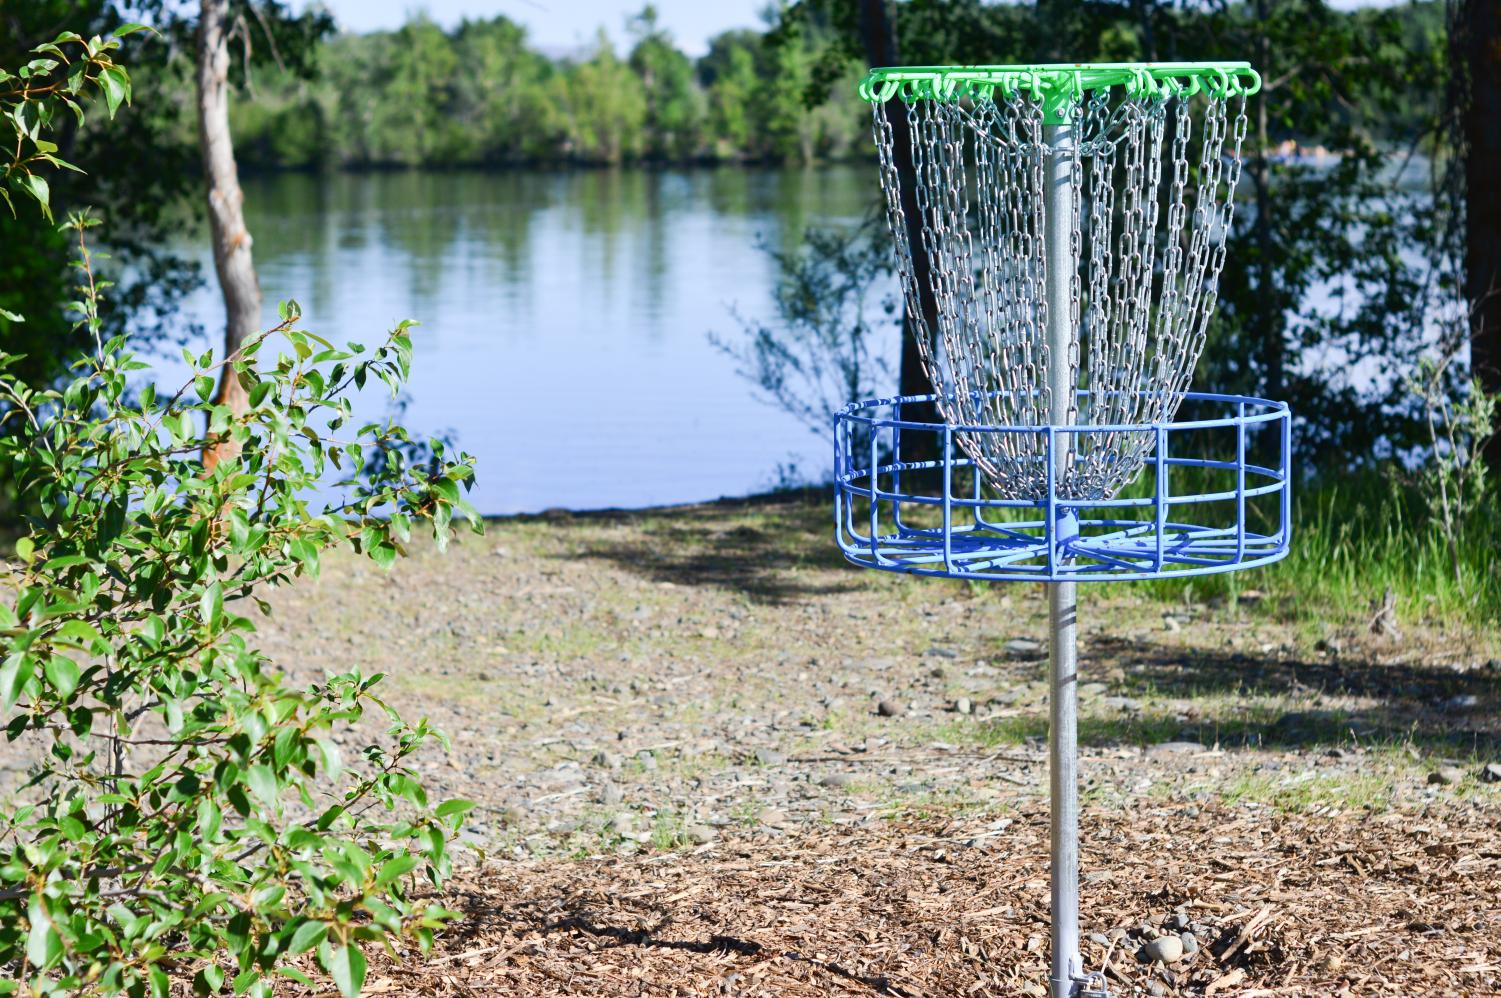 Disc golf on the rise in Ellensburg